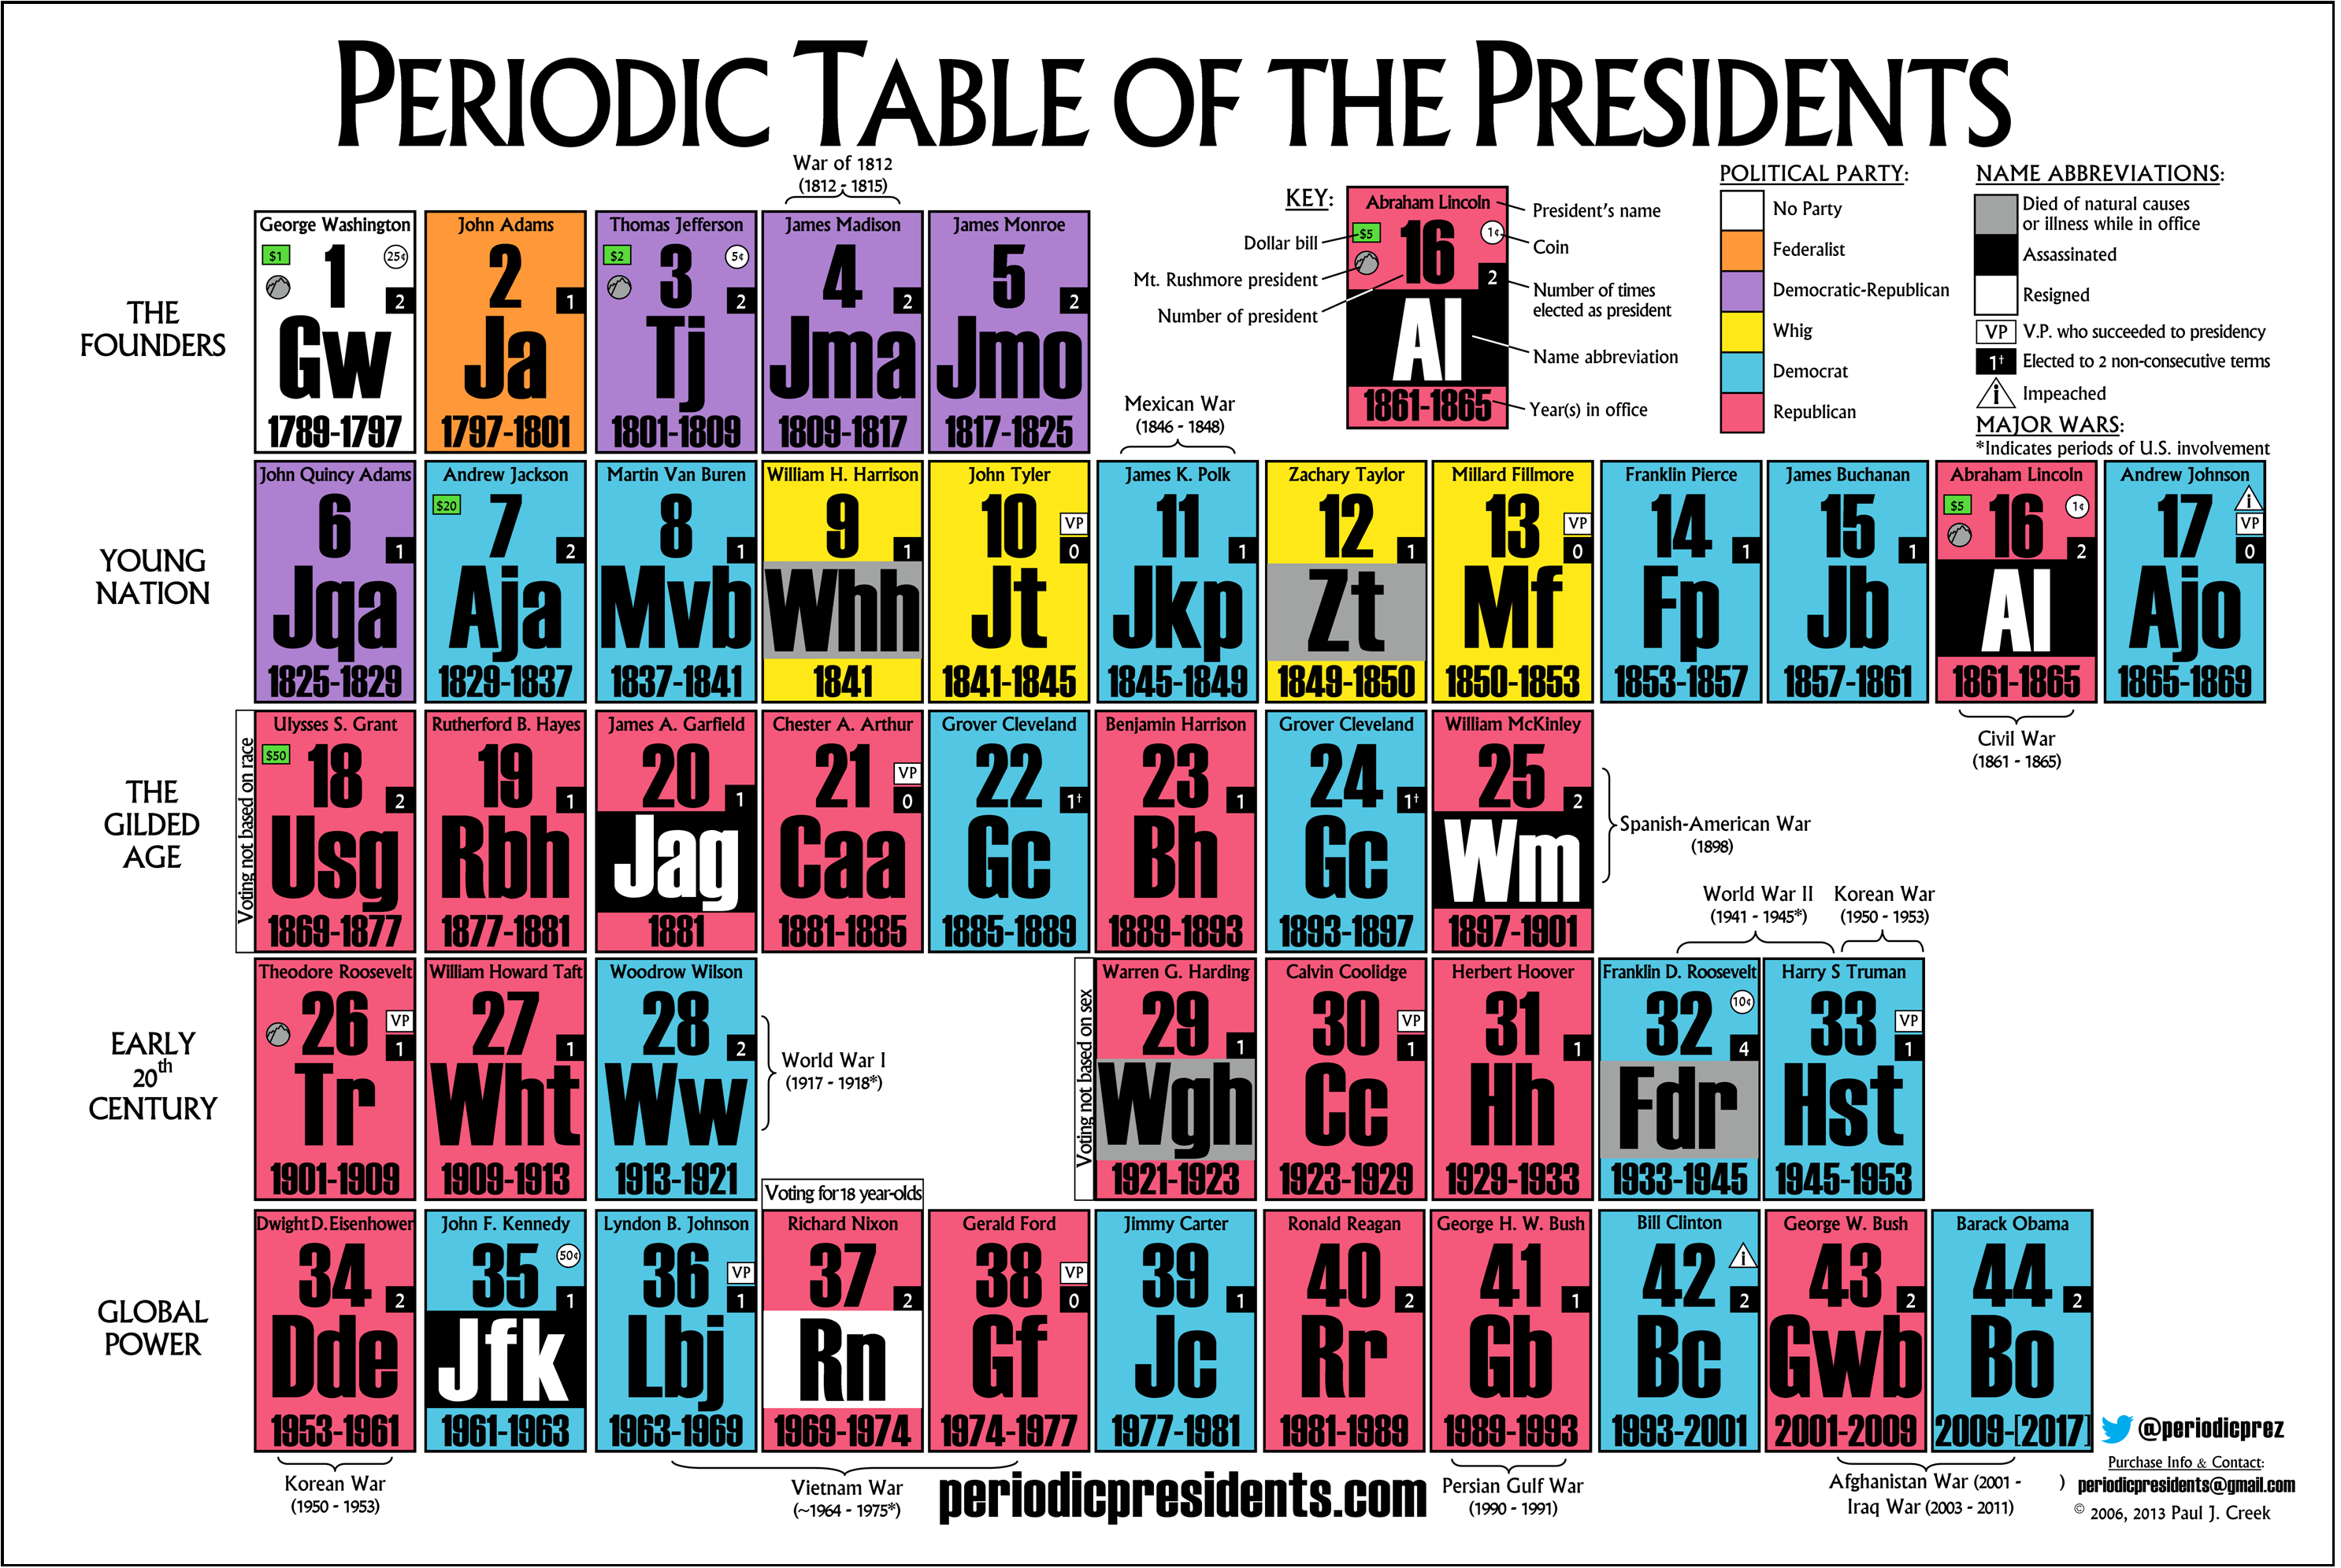 Cool link for the classroom the periodic table of the presidents periodic table of the presidents courtesy of periodicpresidents gamestrikefo Choice Image